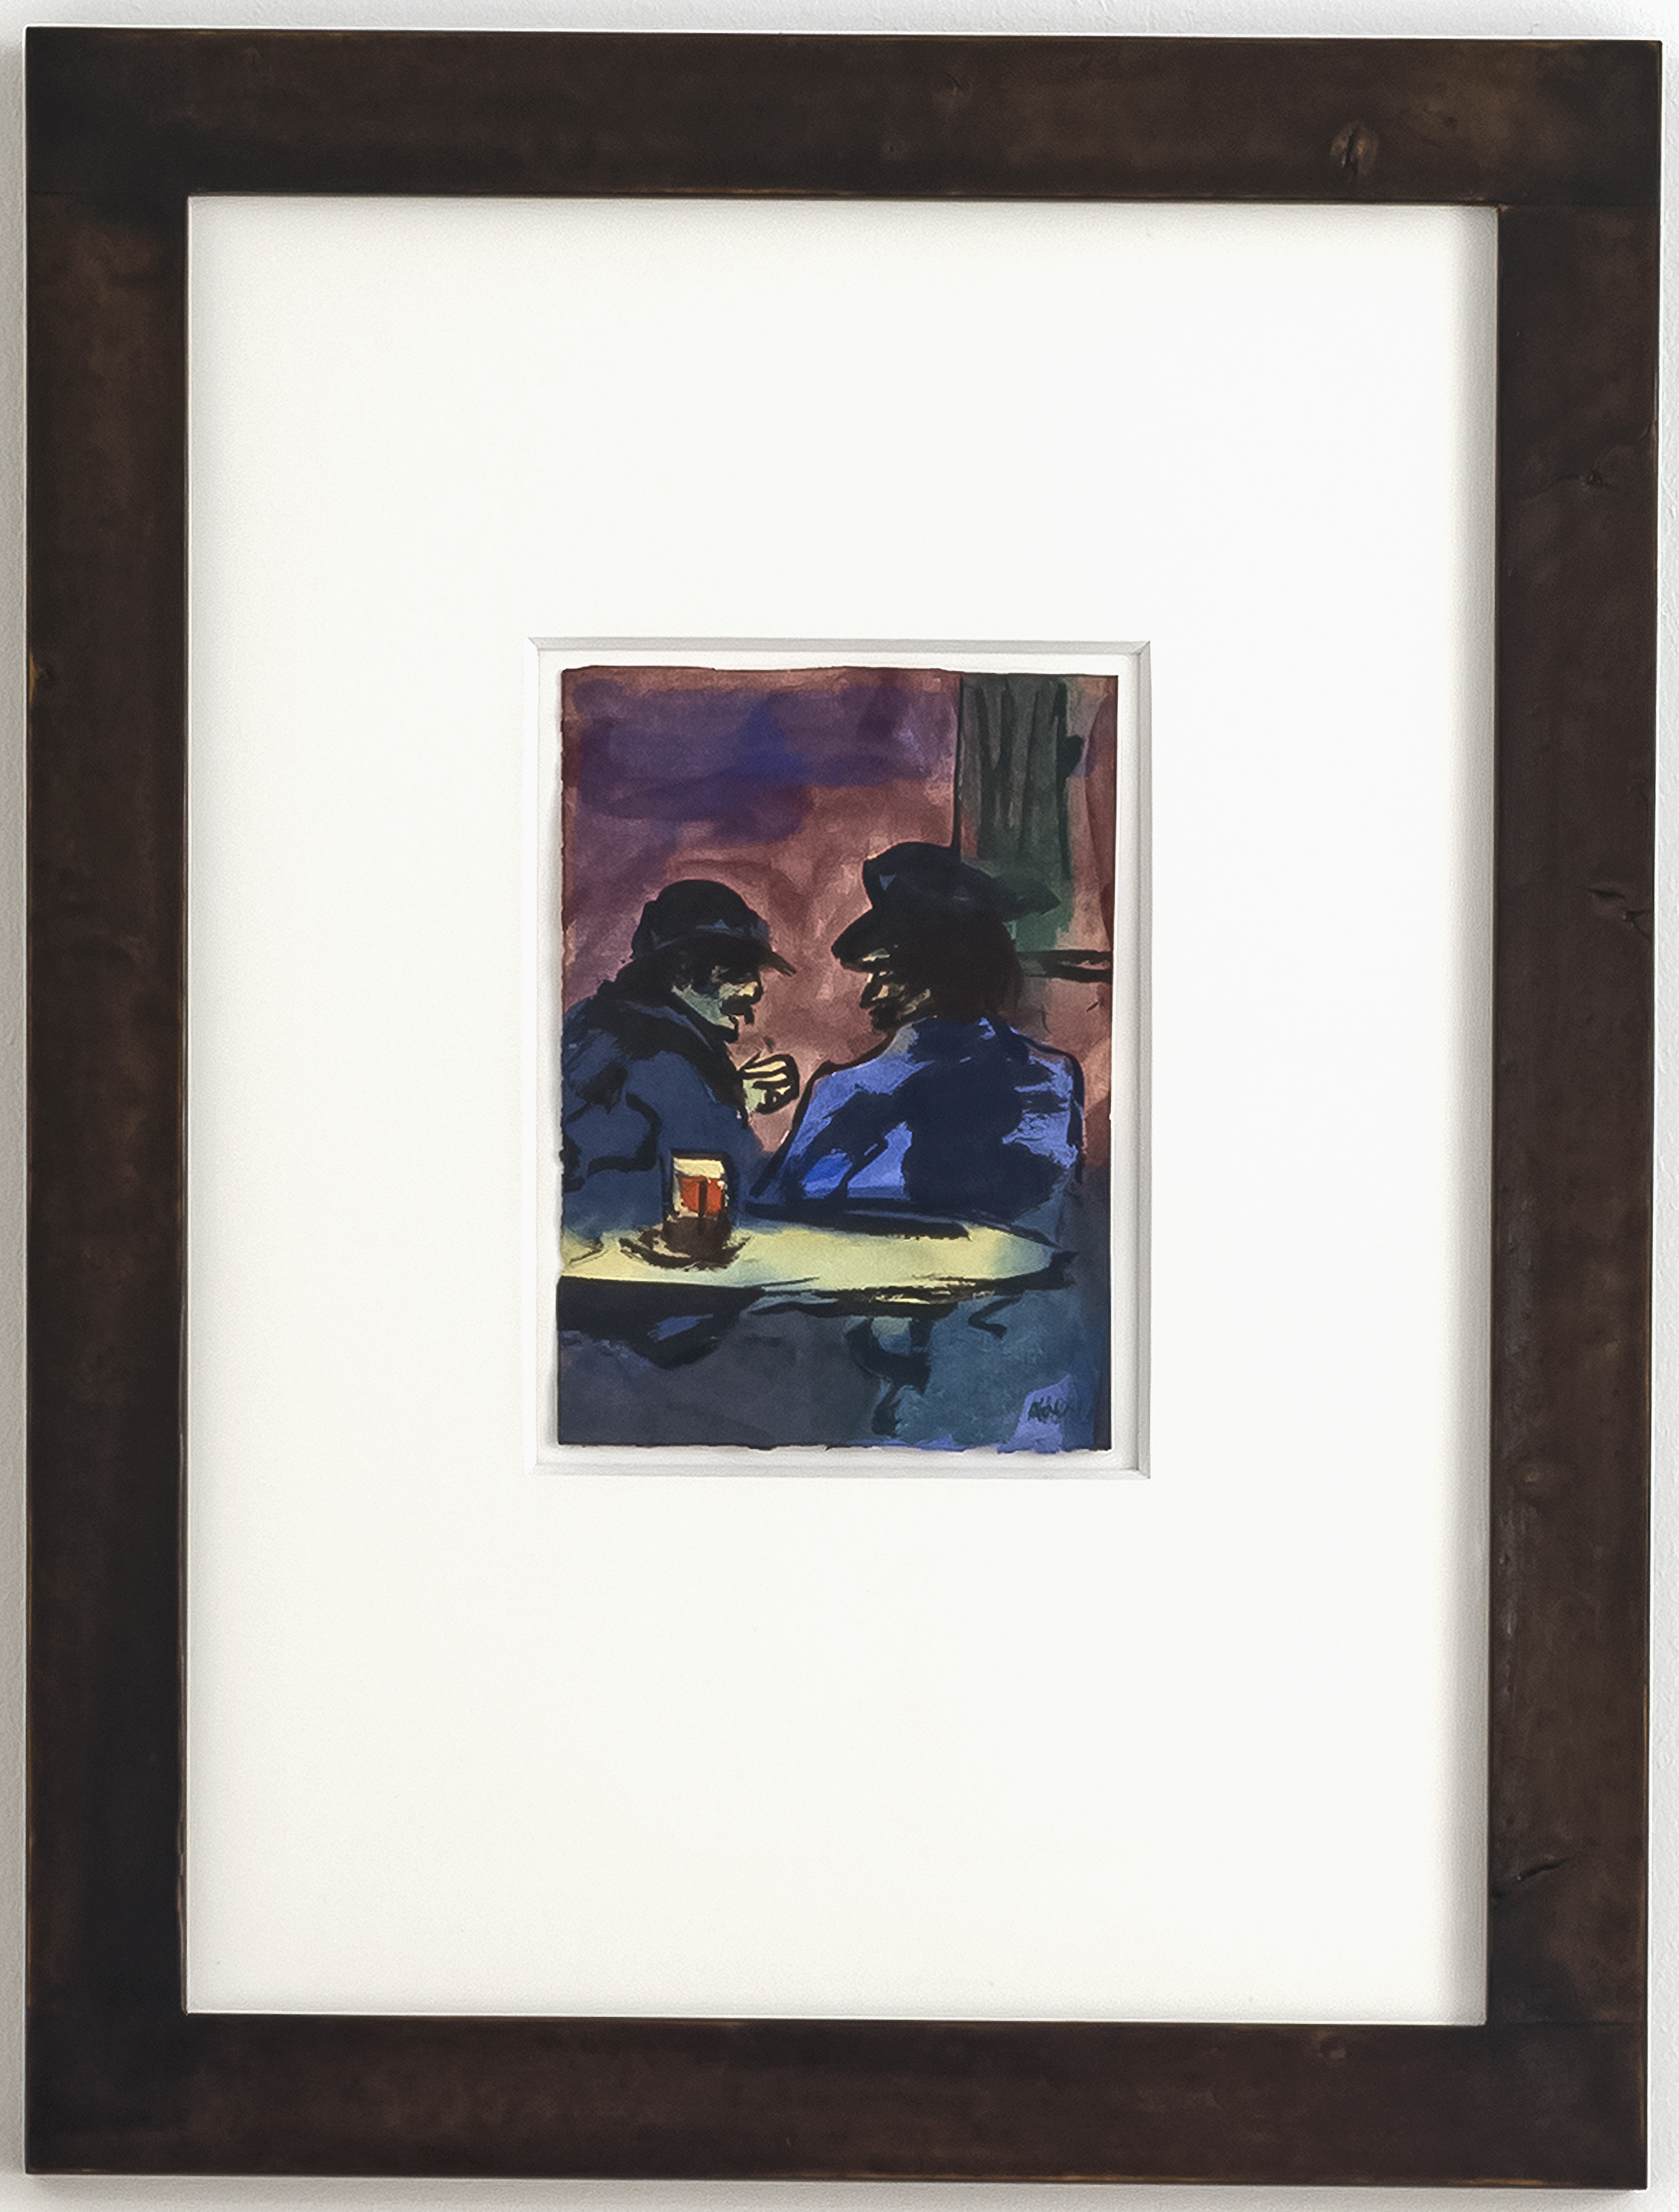 Emil Nolde - Pub Scene with Two Men at The Table 2/4